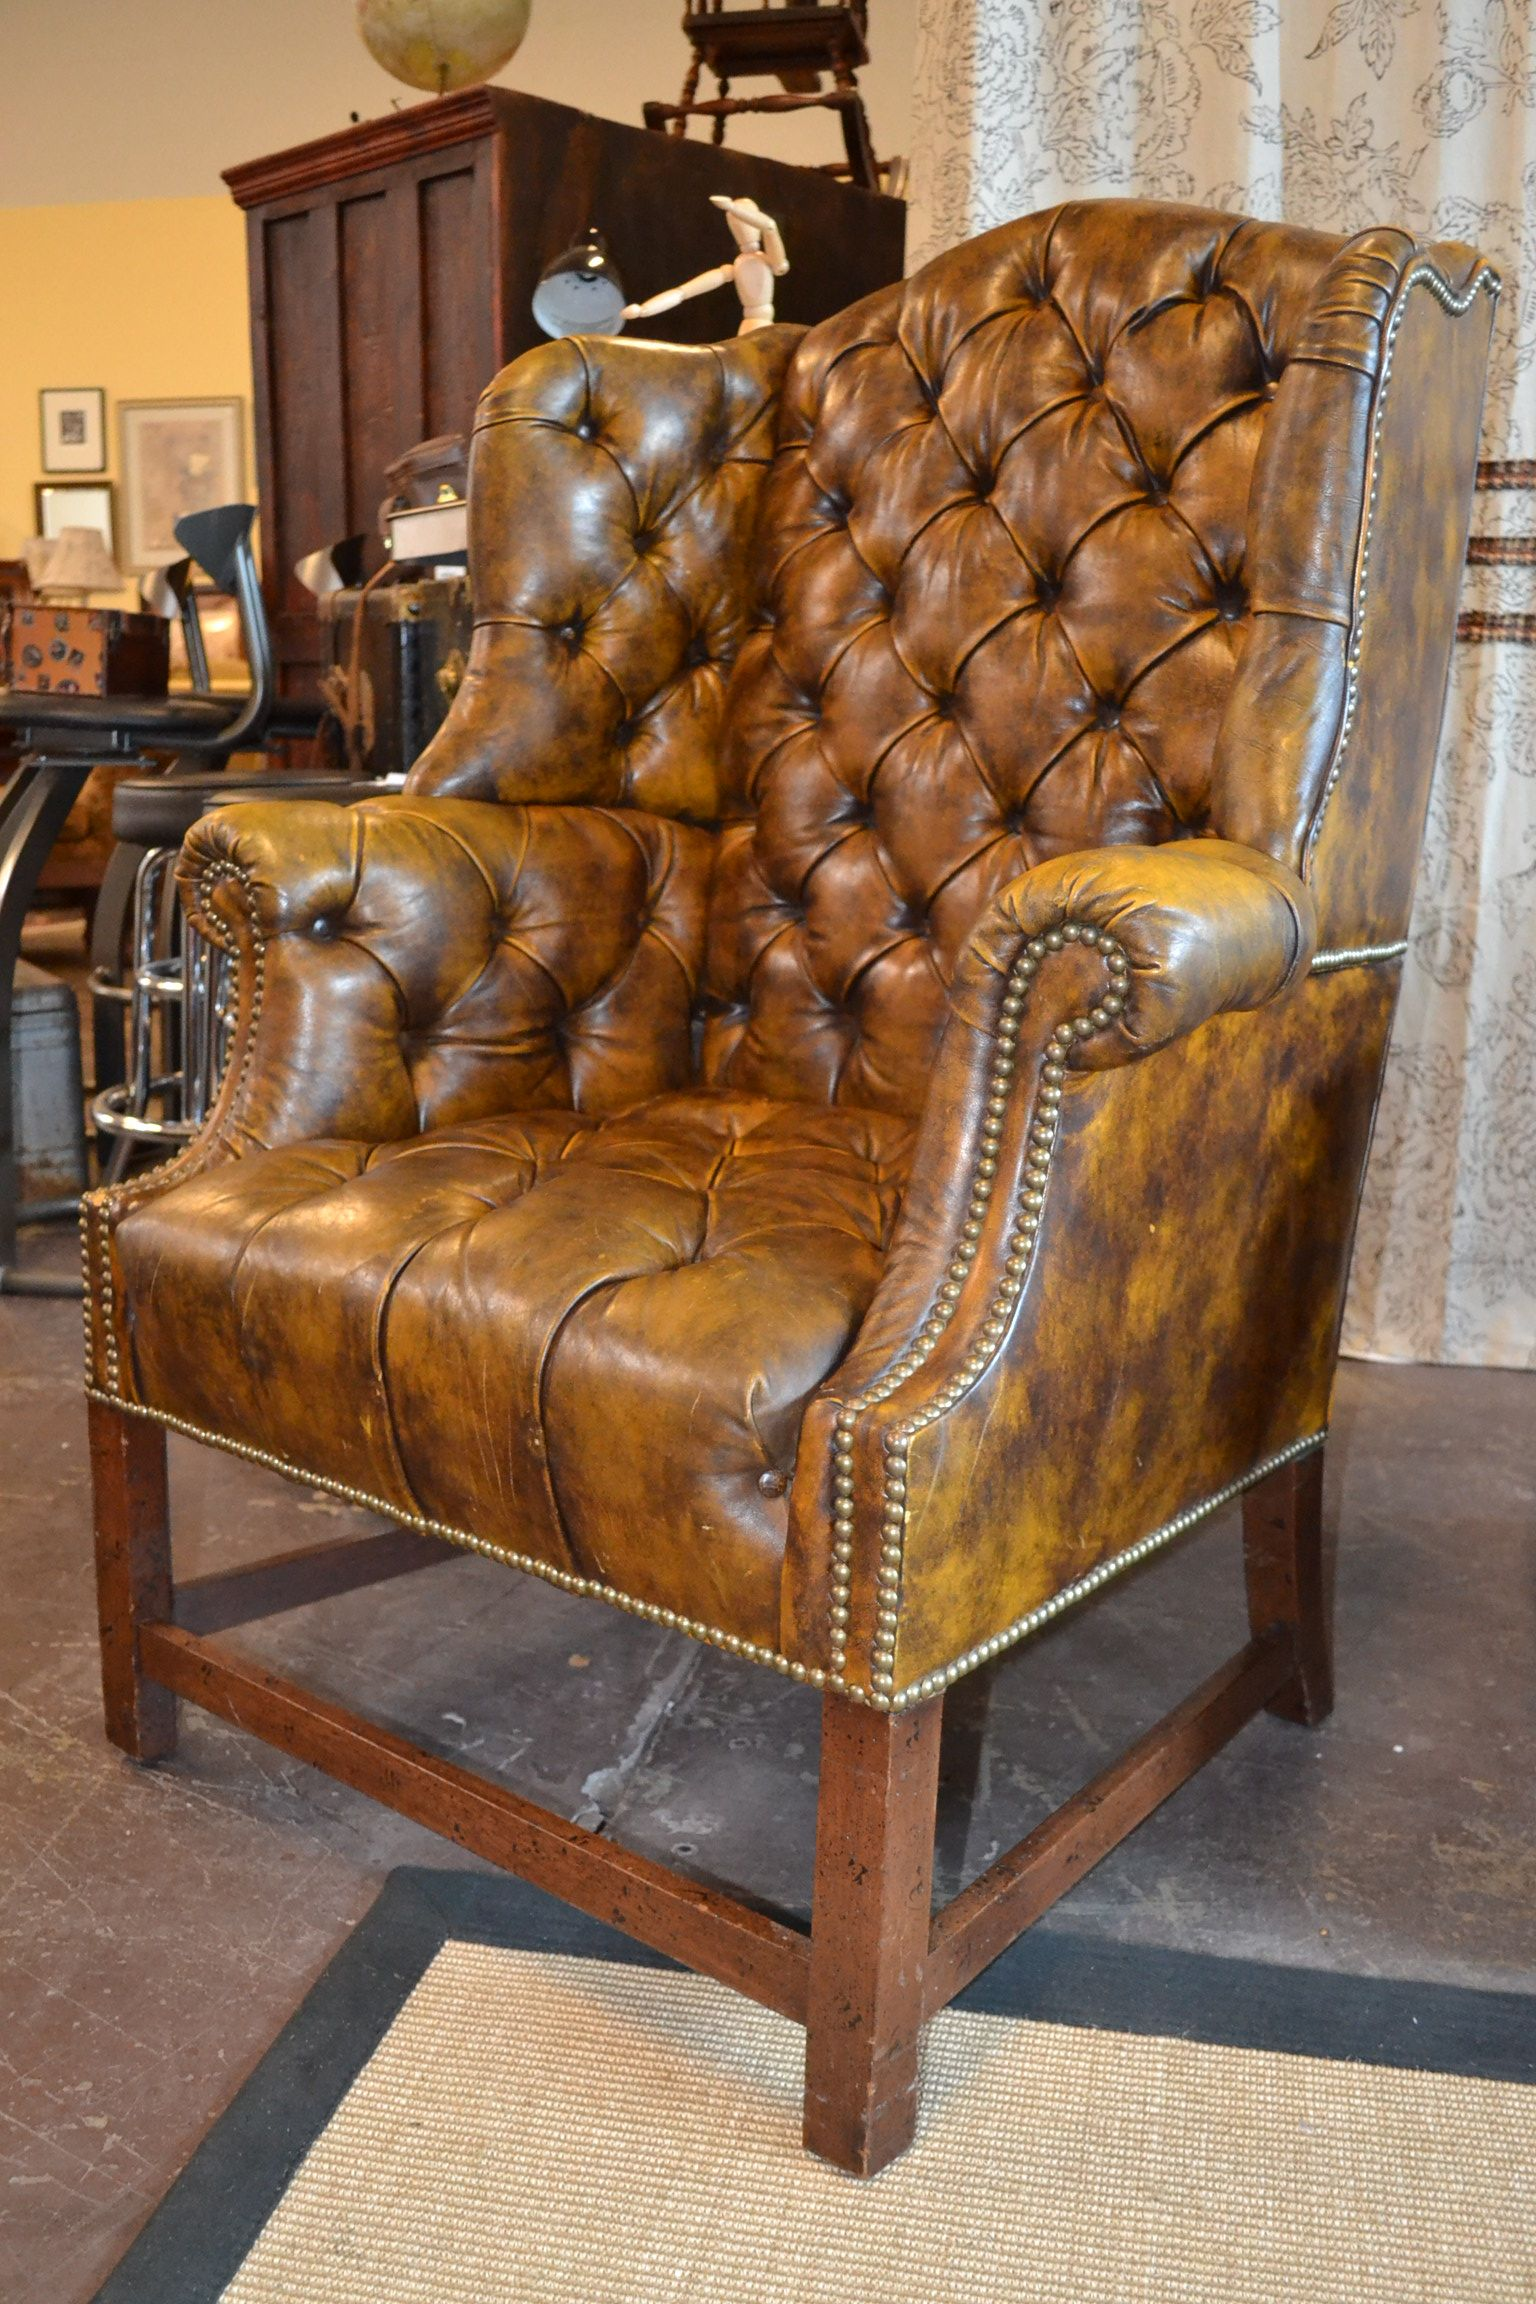 Mottled Leather Hancock U0026 Moore Tufted Library Wing Chair.